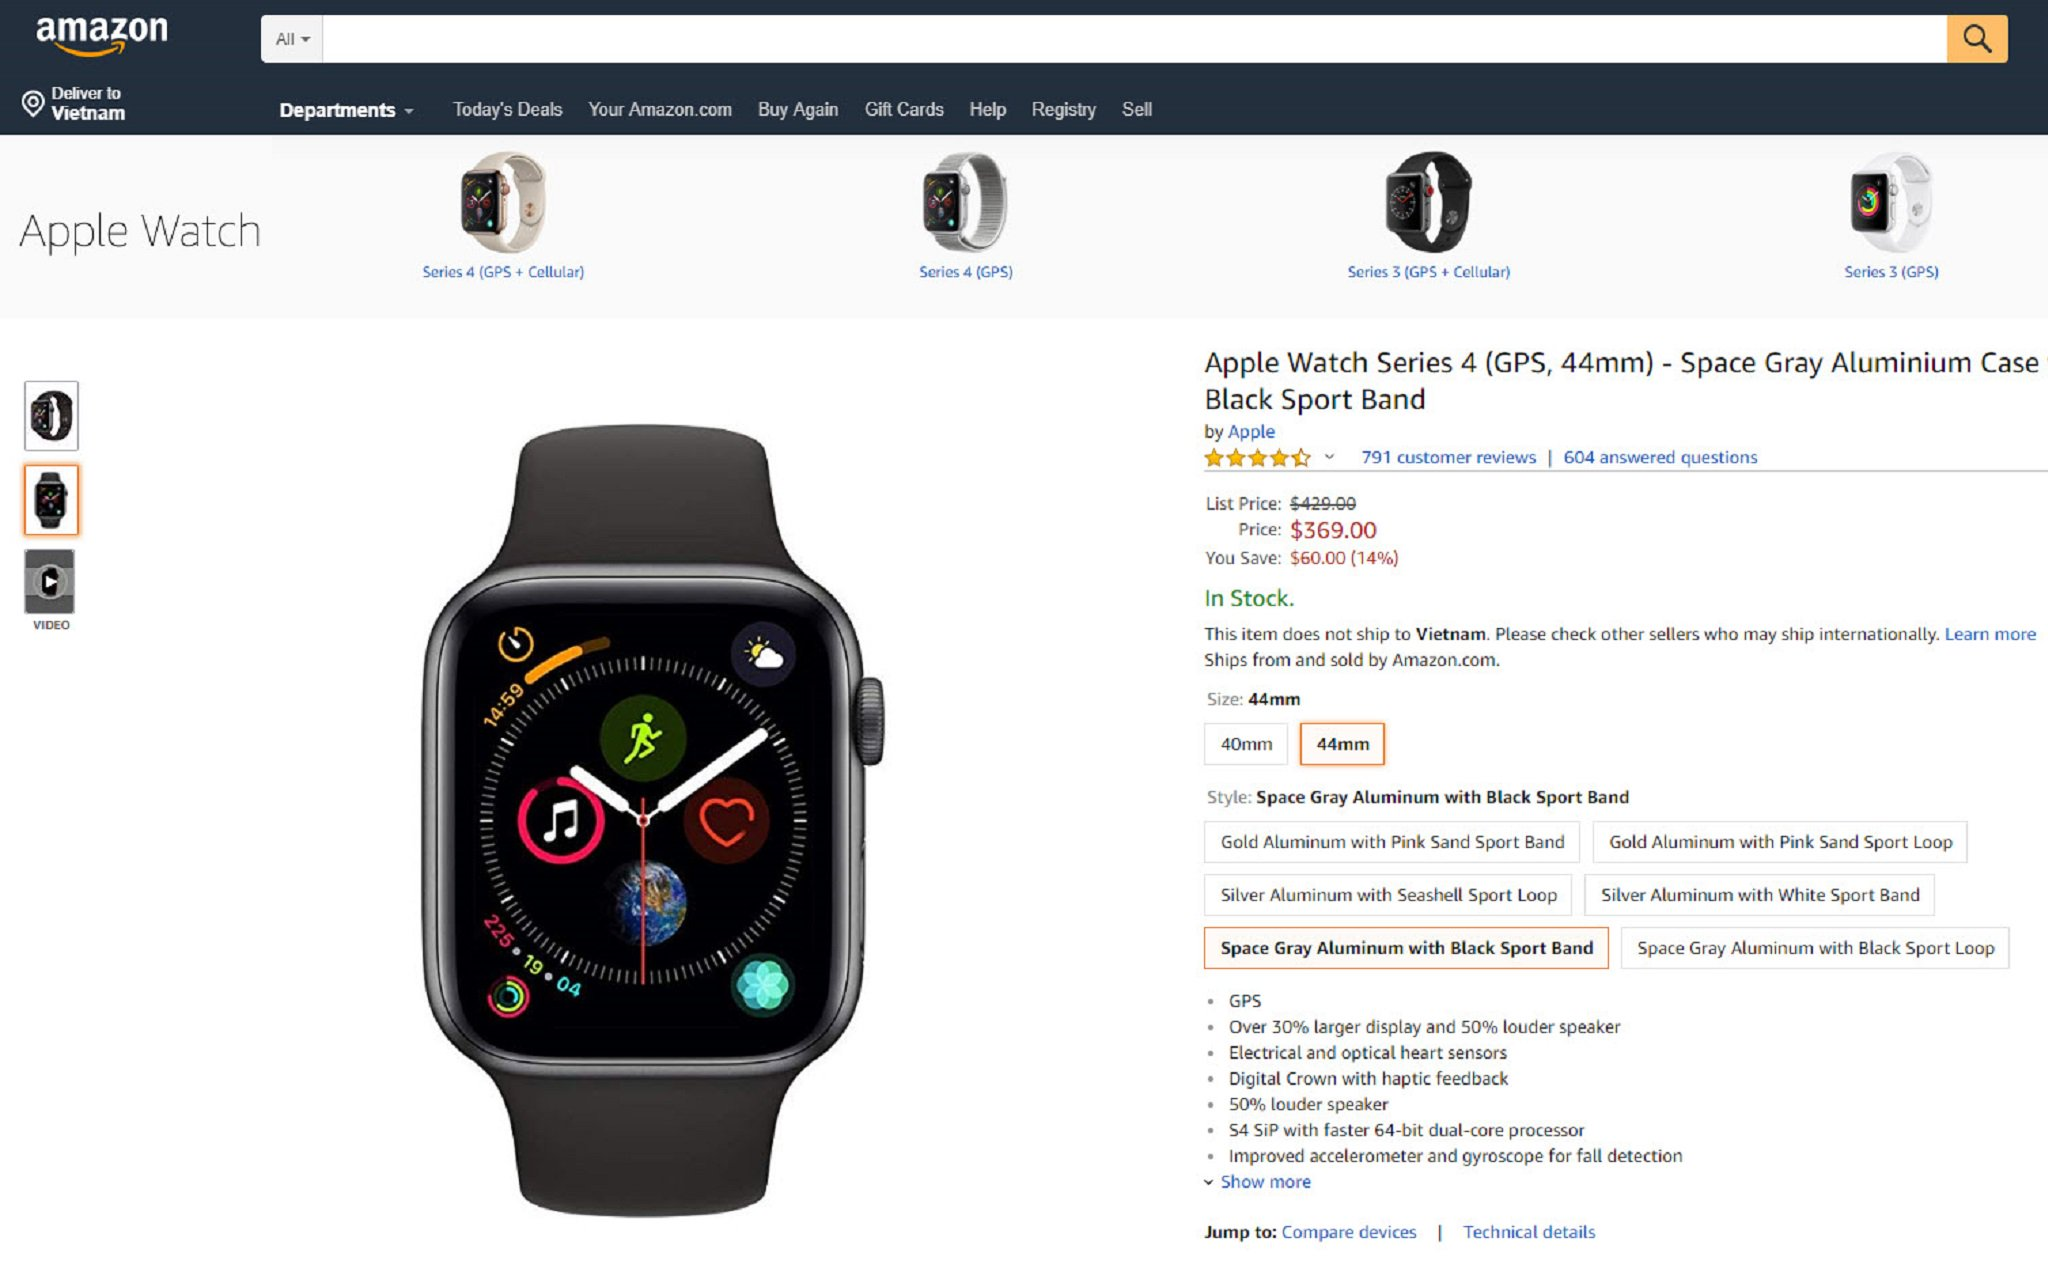 Amazon $ 60 discount Apple Watch series 4 both 40mm and 44mm versions, priced from $ 339